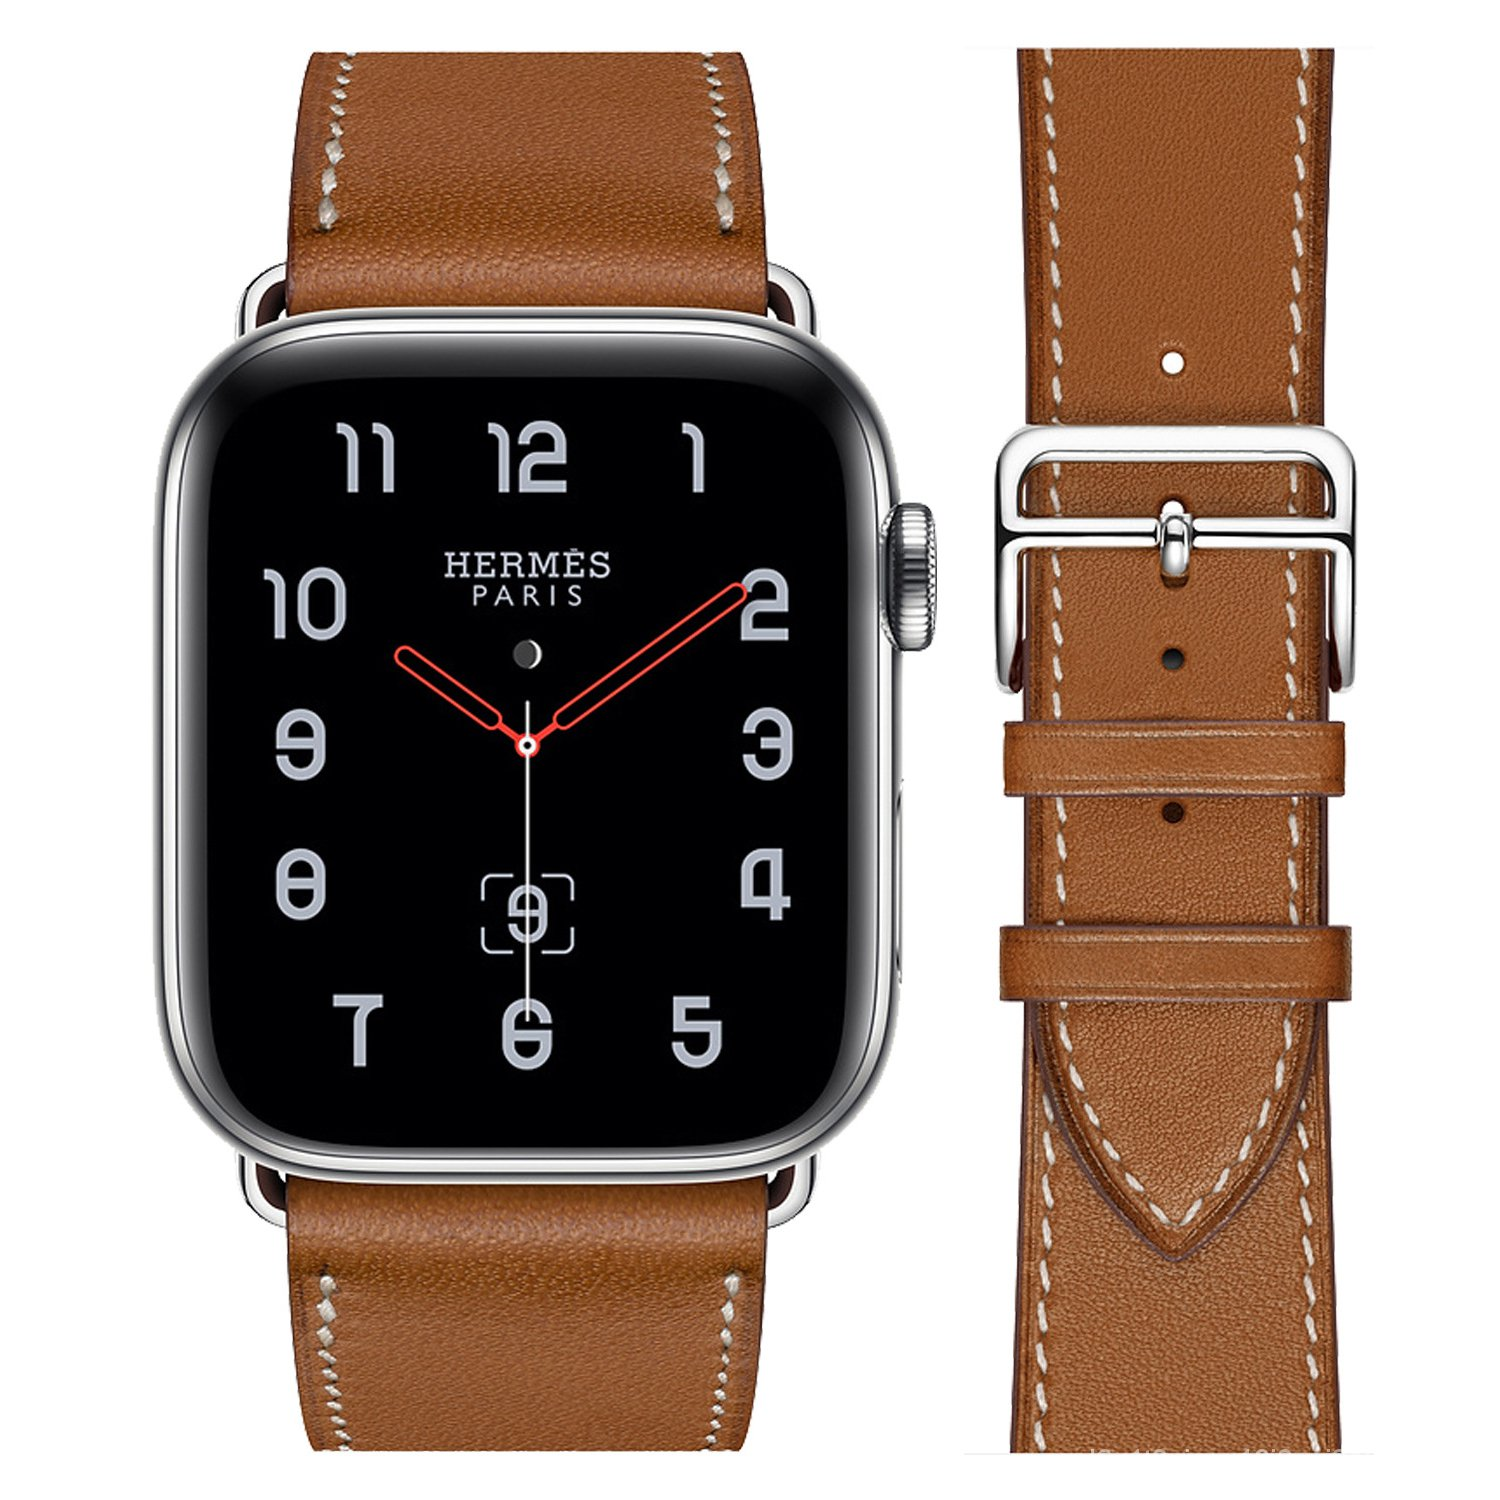 Strap for Apple Watch Series 4 5 6 Band 44mm 40mm Classic Buckle Leather Watchband for iWatch 3 2 1 42mm 38mm Bracelet L